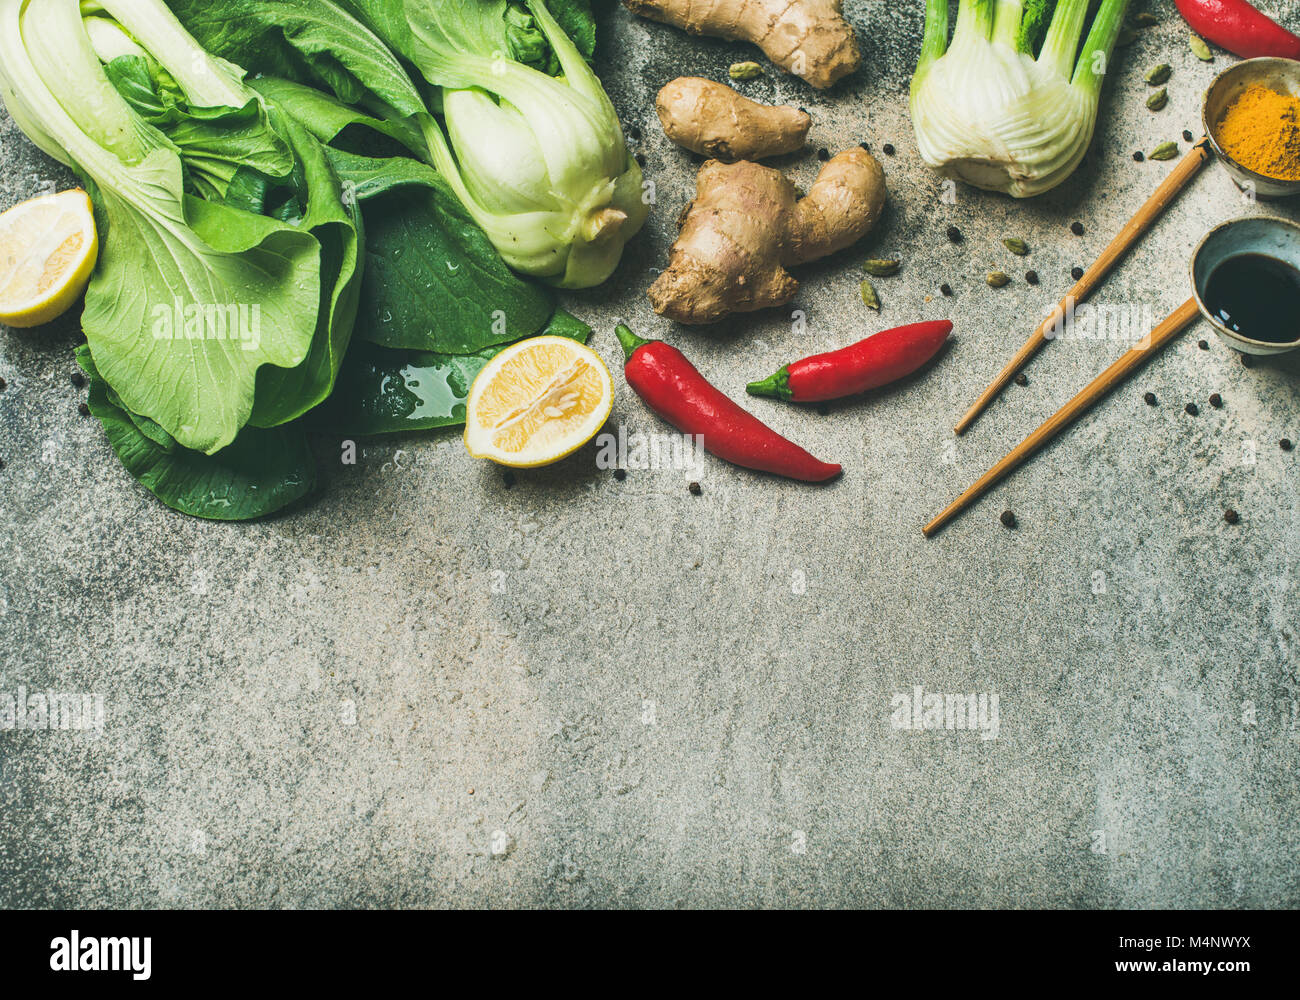 Asian cuisine ingredients over concrete background, top view, copy sapce. Flat-lay of vegetables, spices and sauces - Stock Image